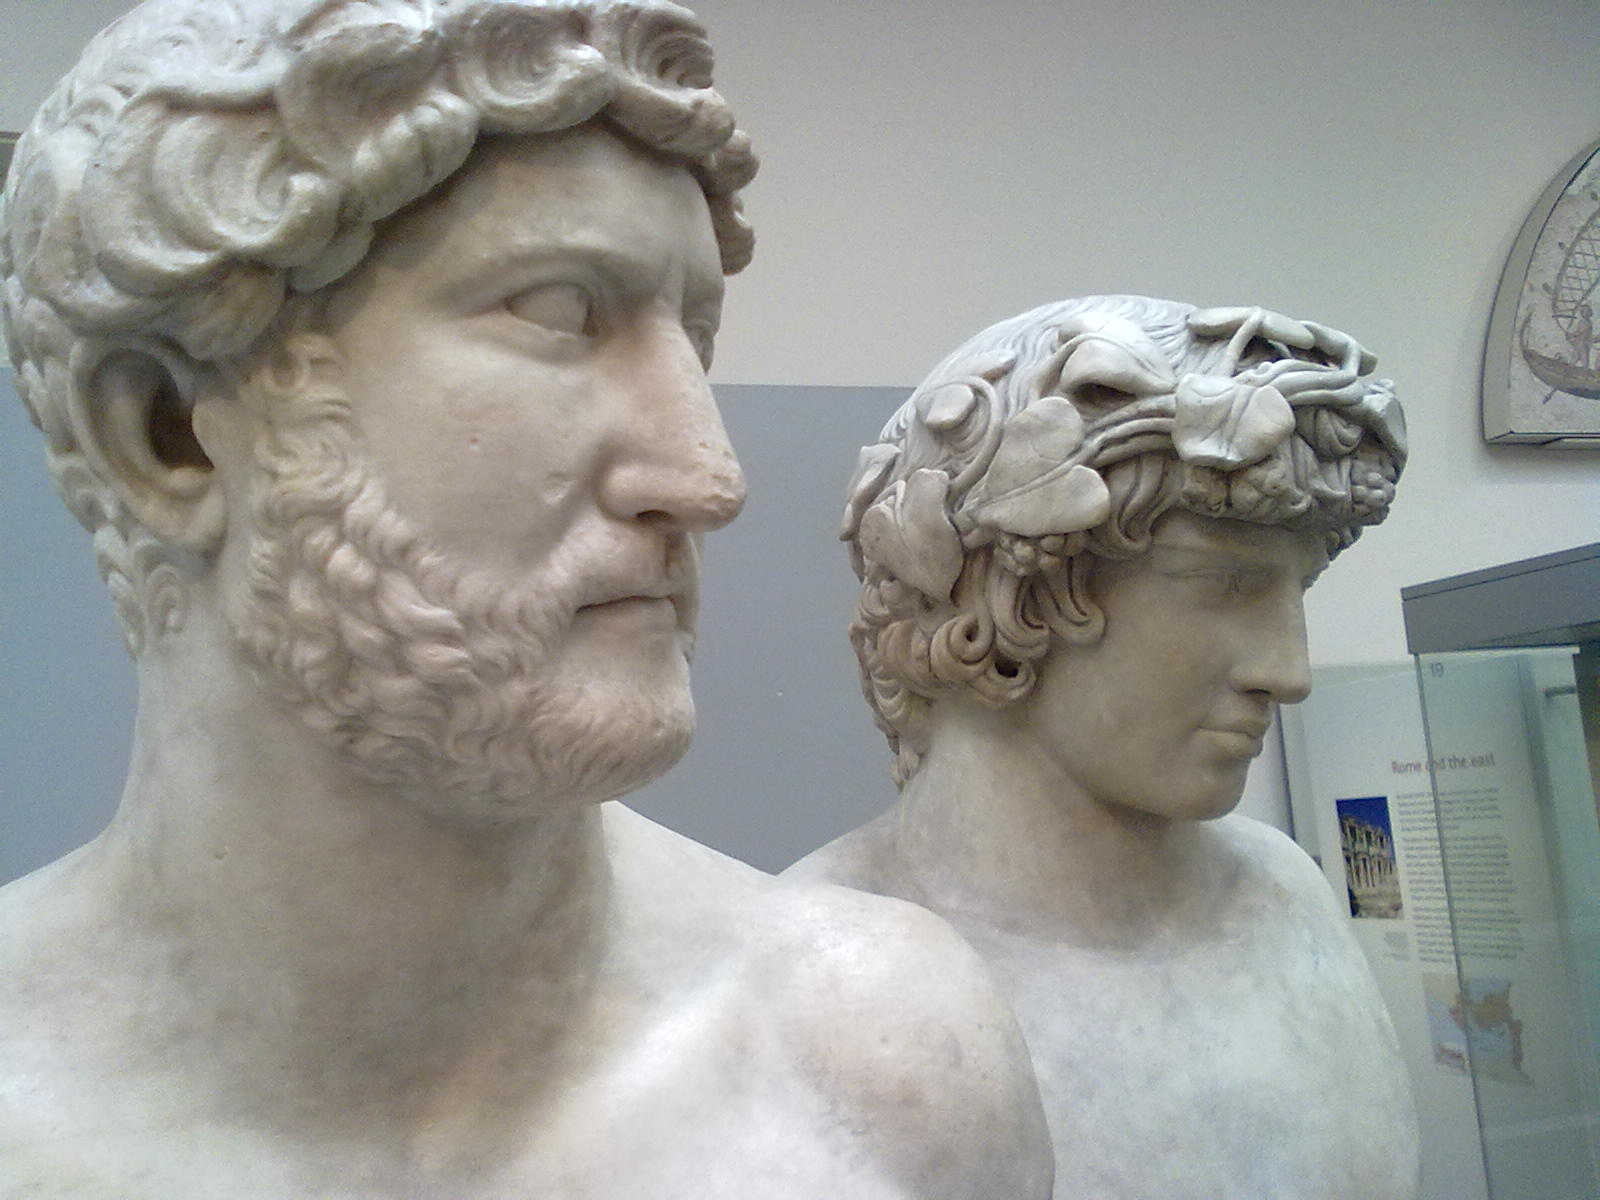 Adjacent busts of Emperor Hadrian and Antinous exhibited at the British Museum, London.